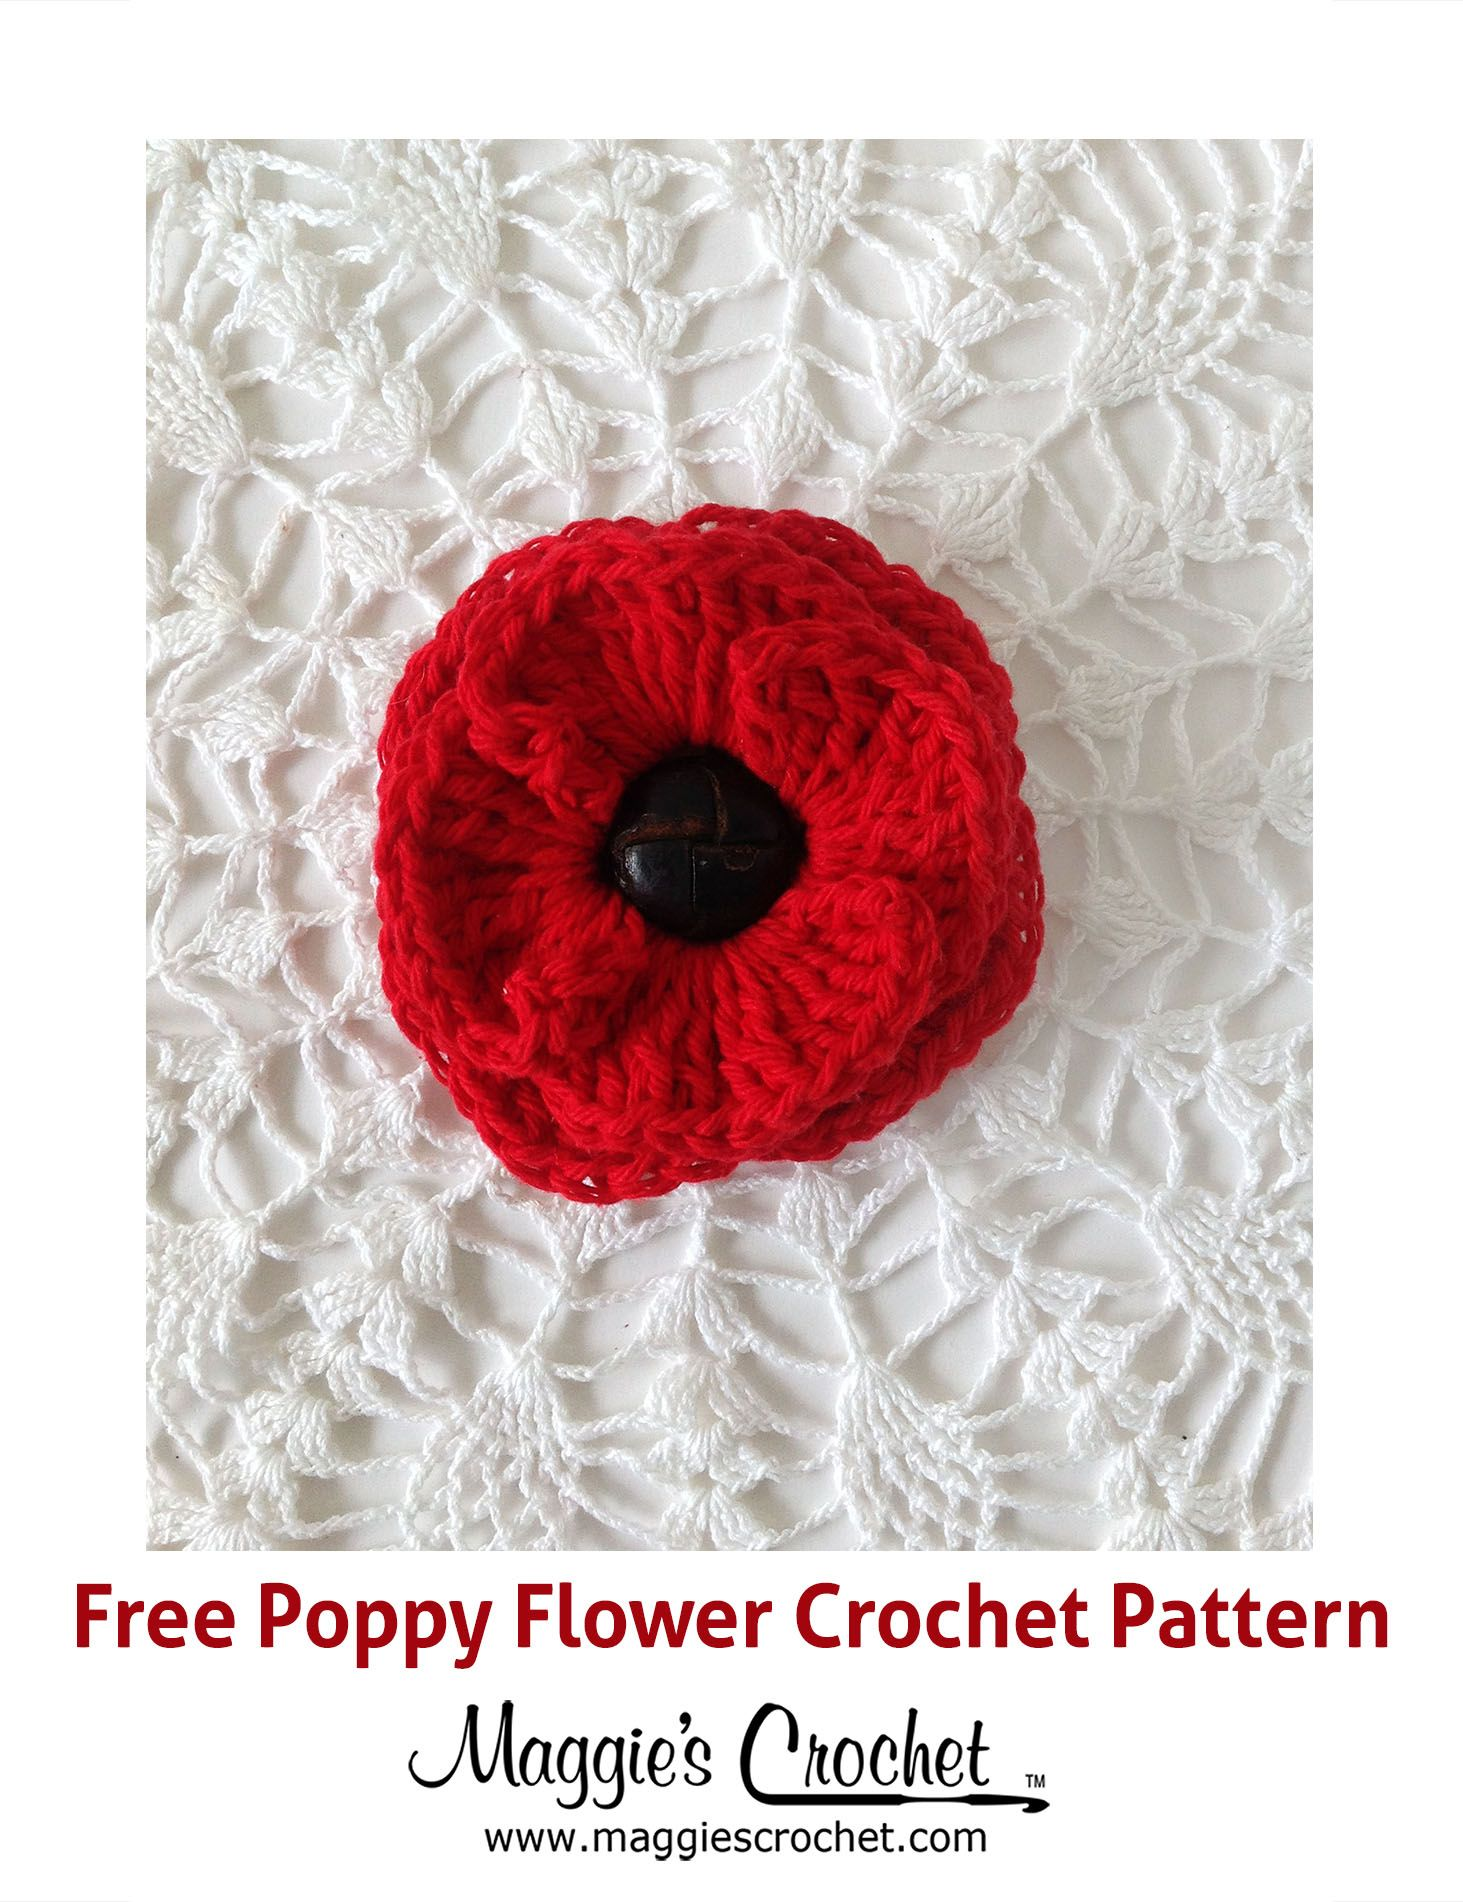 Button poppy free crochet pattern from maggies crochet blog button poppy free crochet pattern from maggies crochet blog bankloansurffo Image collections